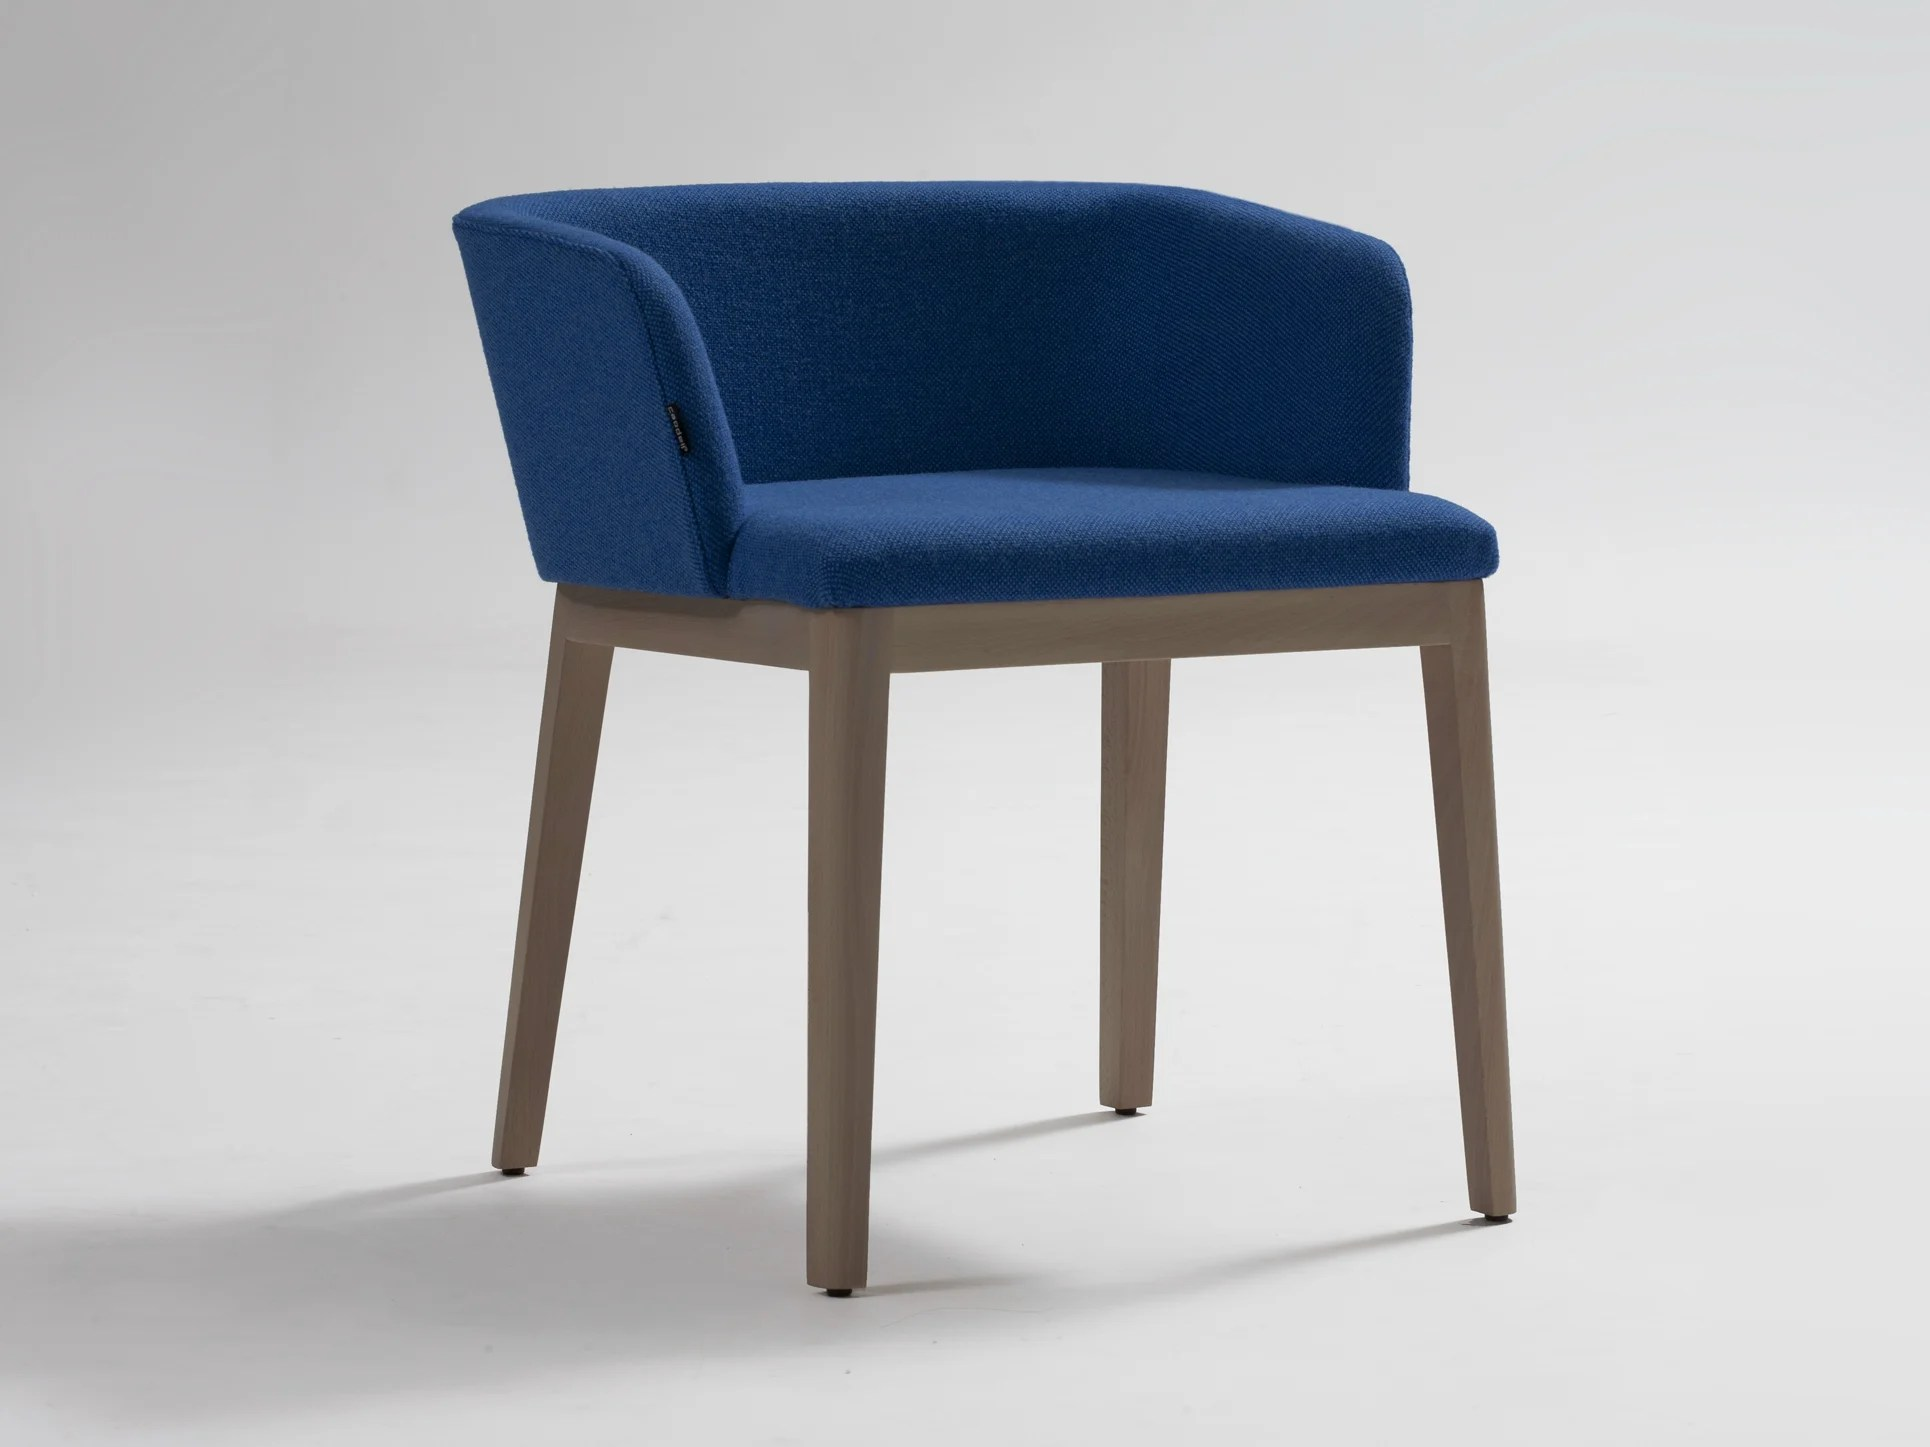 Niedriger Sessel Concord Loungesessel By Capdell Design Claesson Koivisto Rune